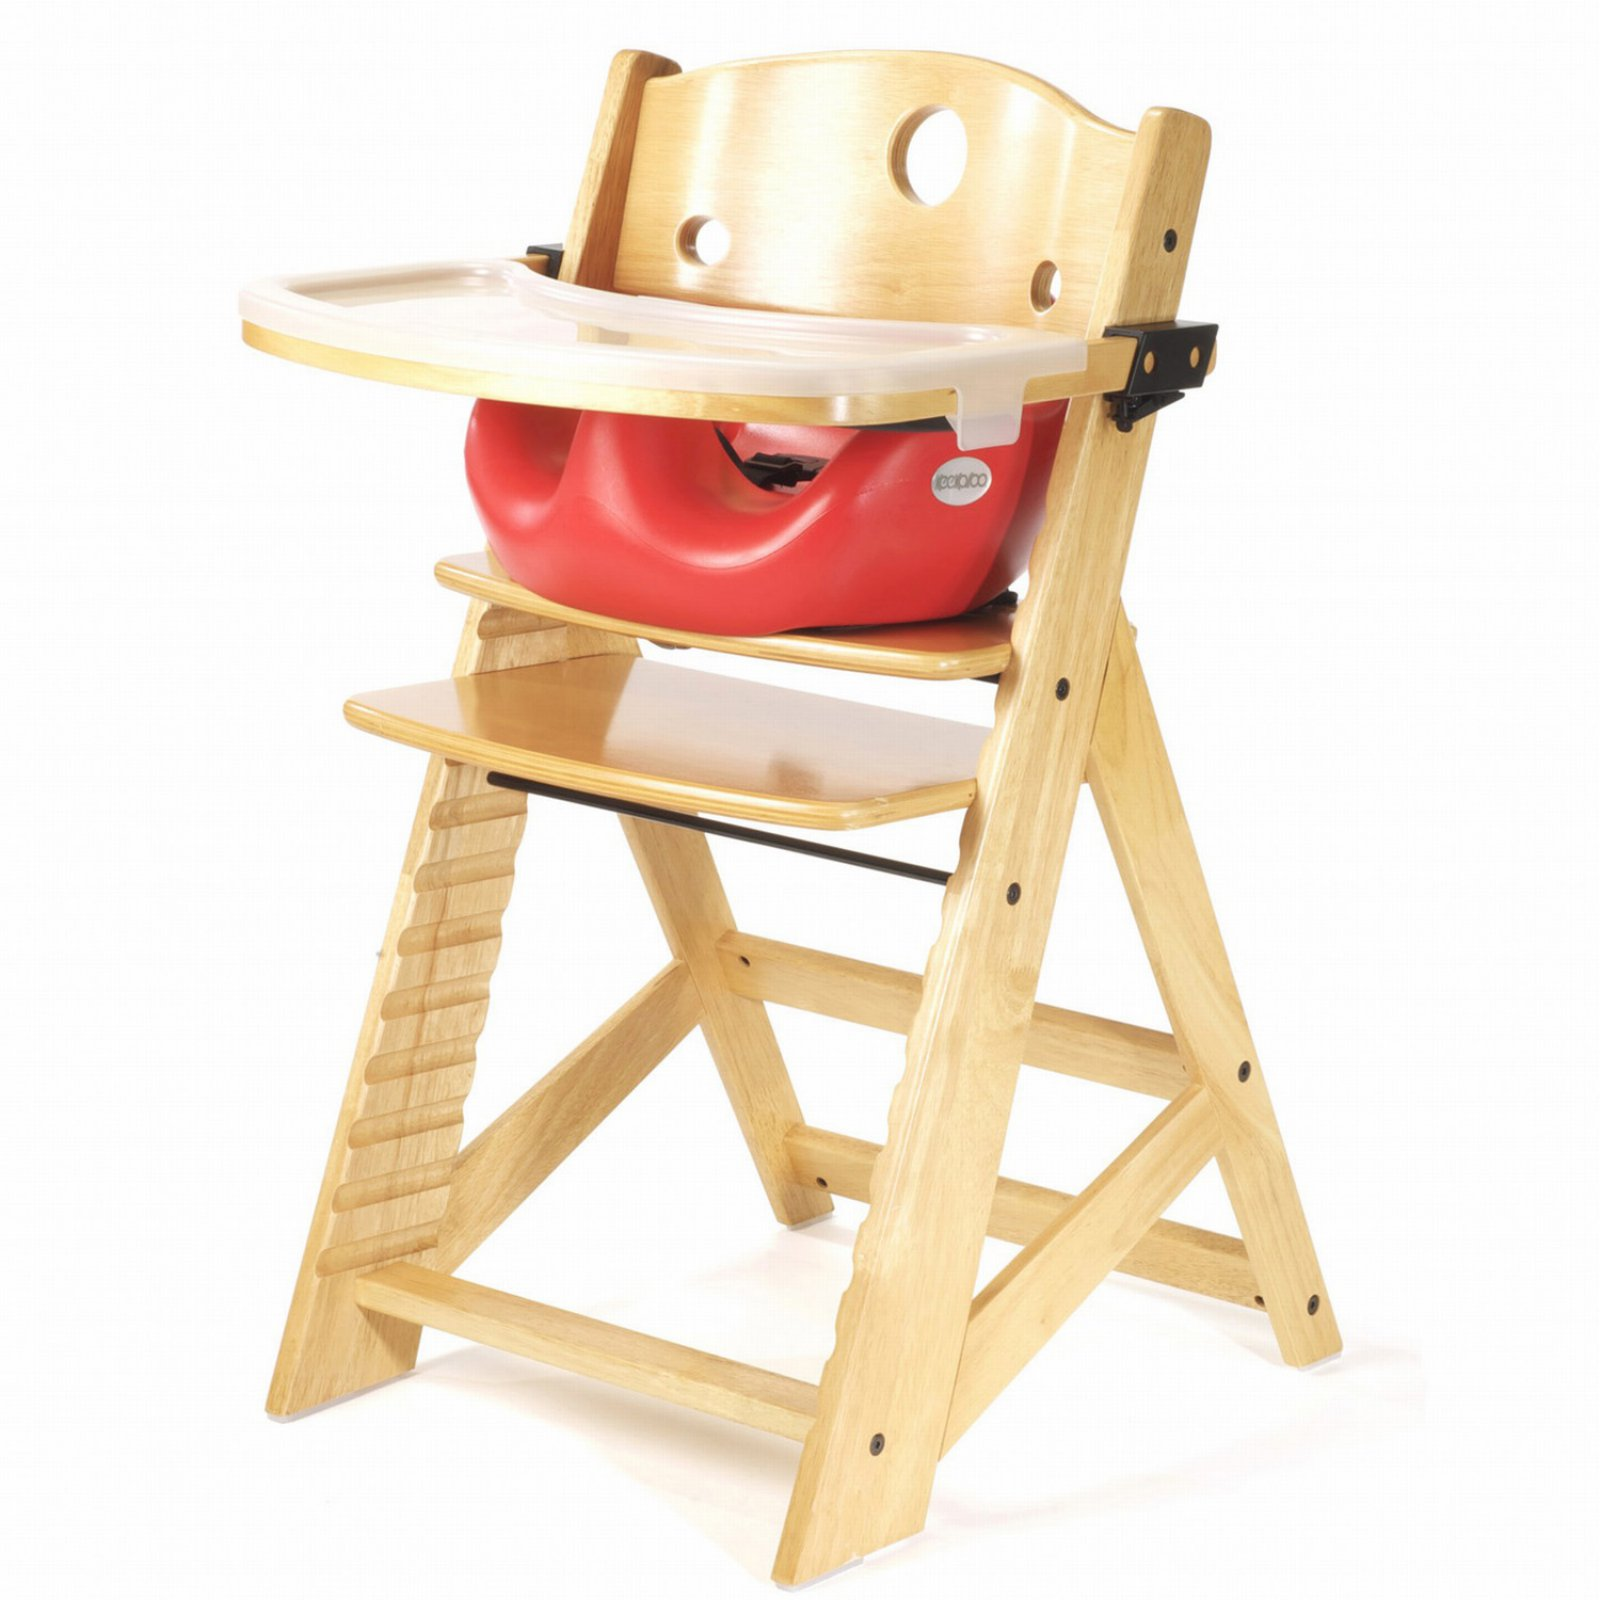 Keekaroo Height Right High Chair with Infant Seat & Tray - Cherry